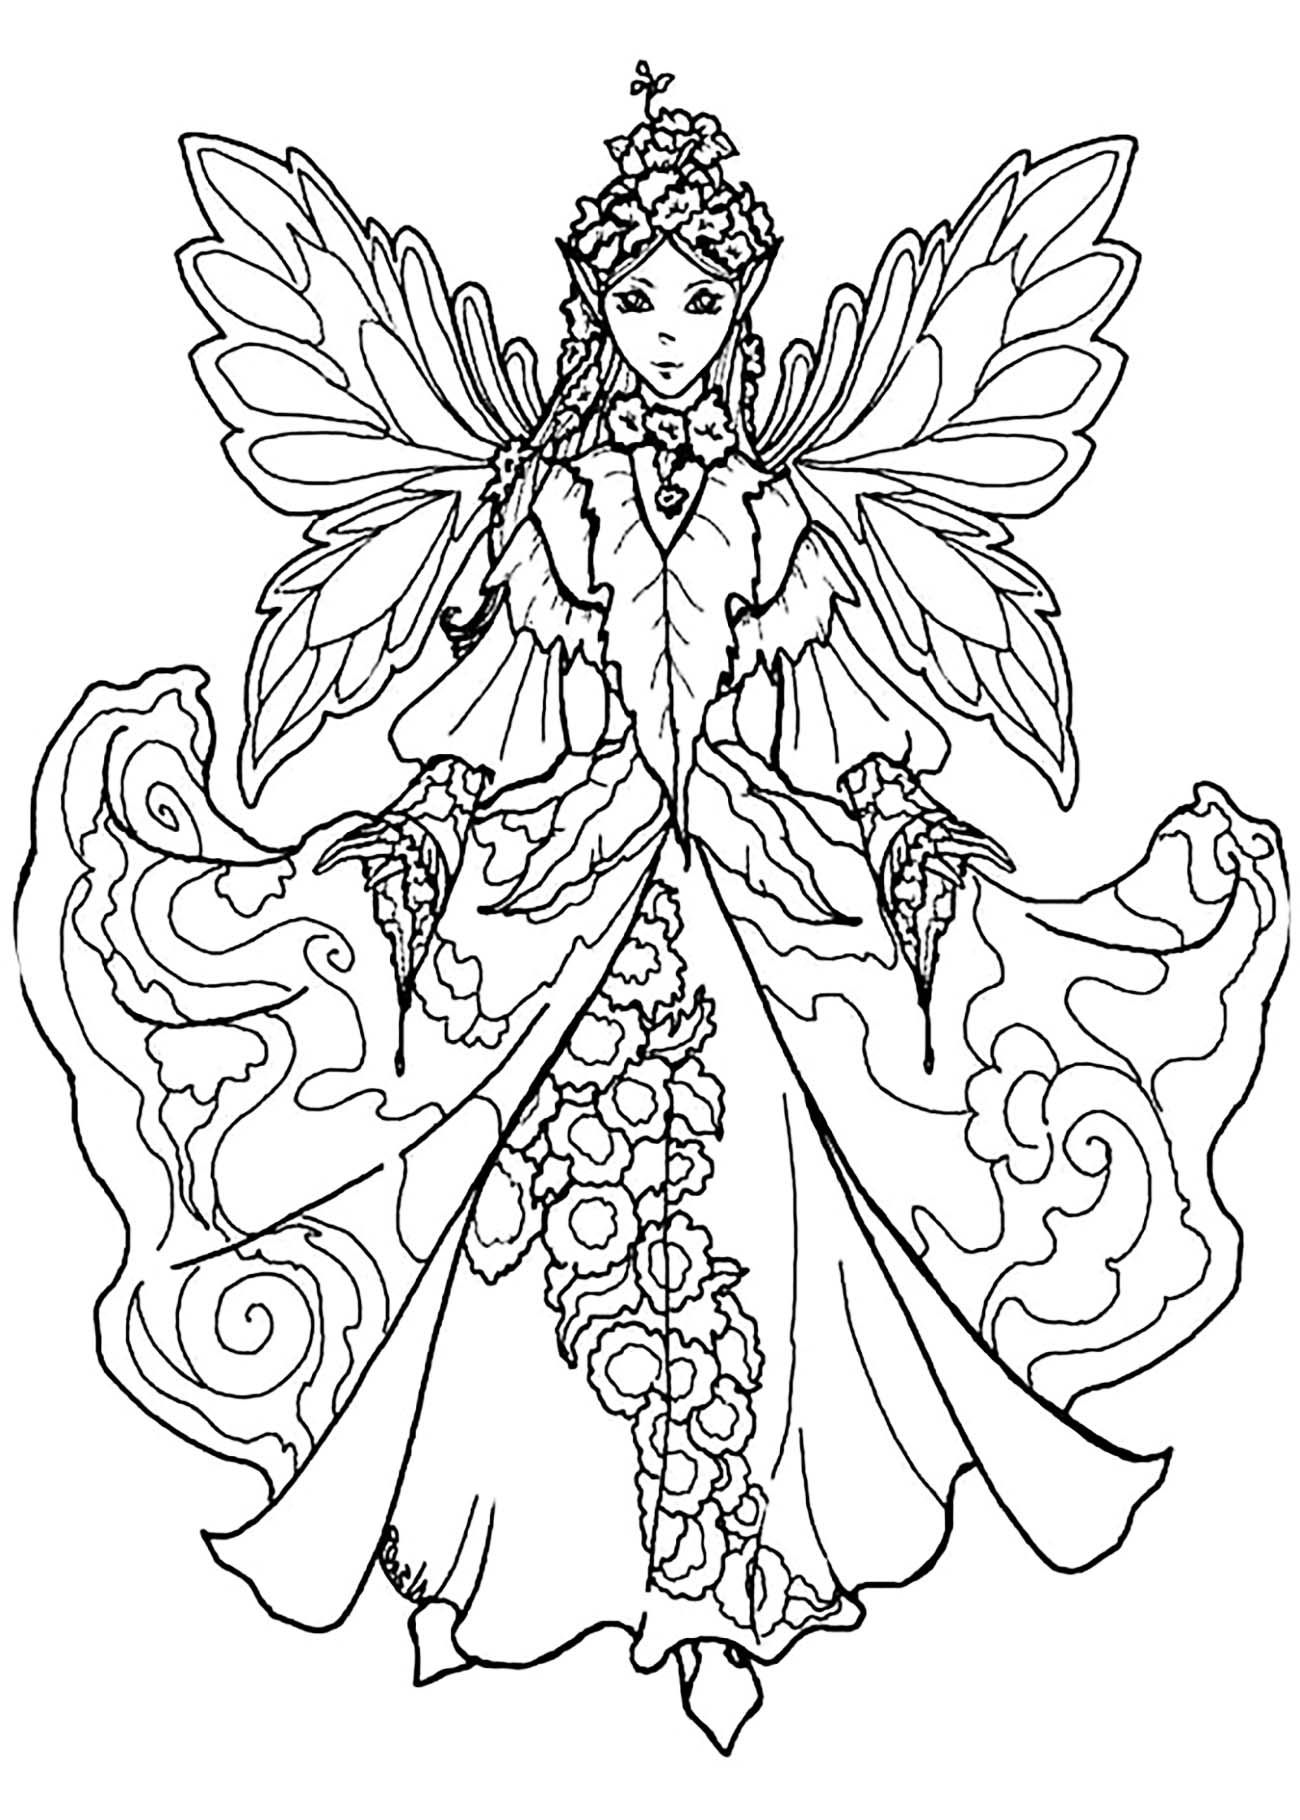 Fairy Coloring Pages For Adults Best Coloring Pages For Kids Fairy Coloring Fairy Coloring Pages Coloring Pages